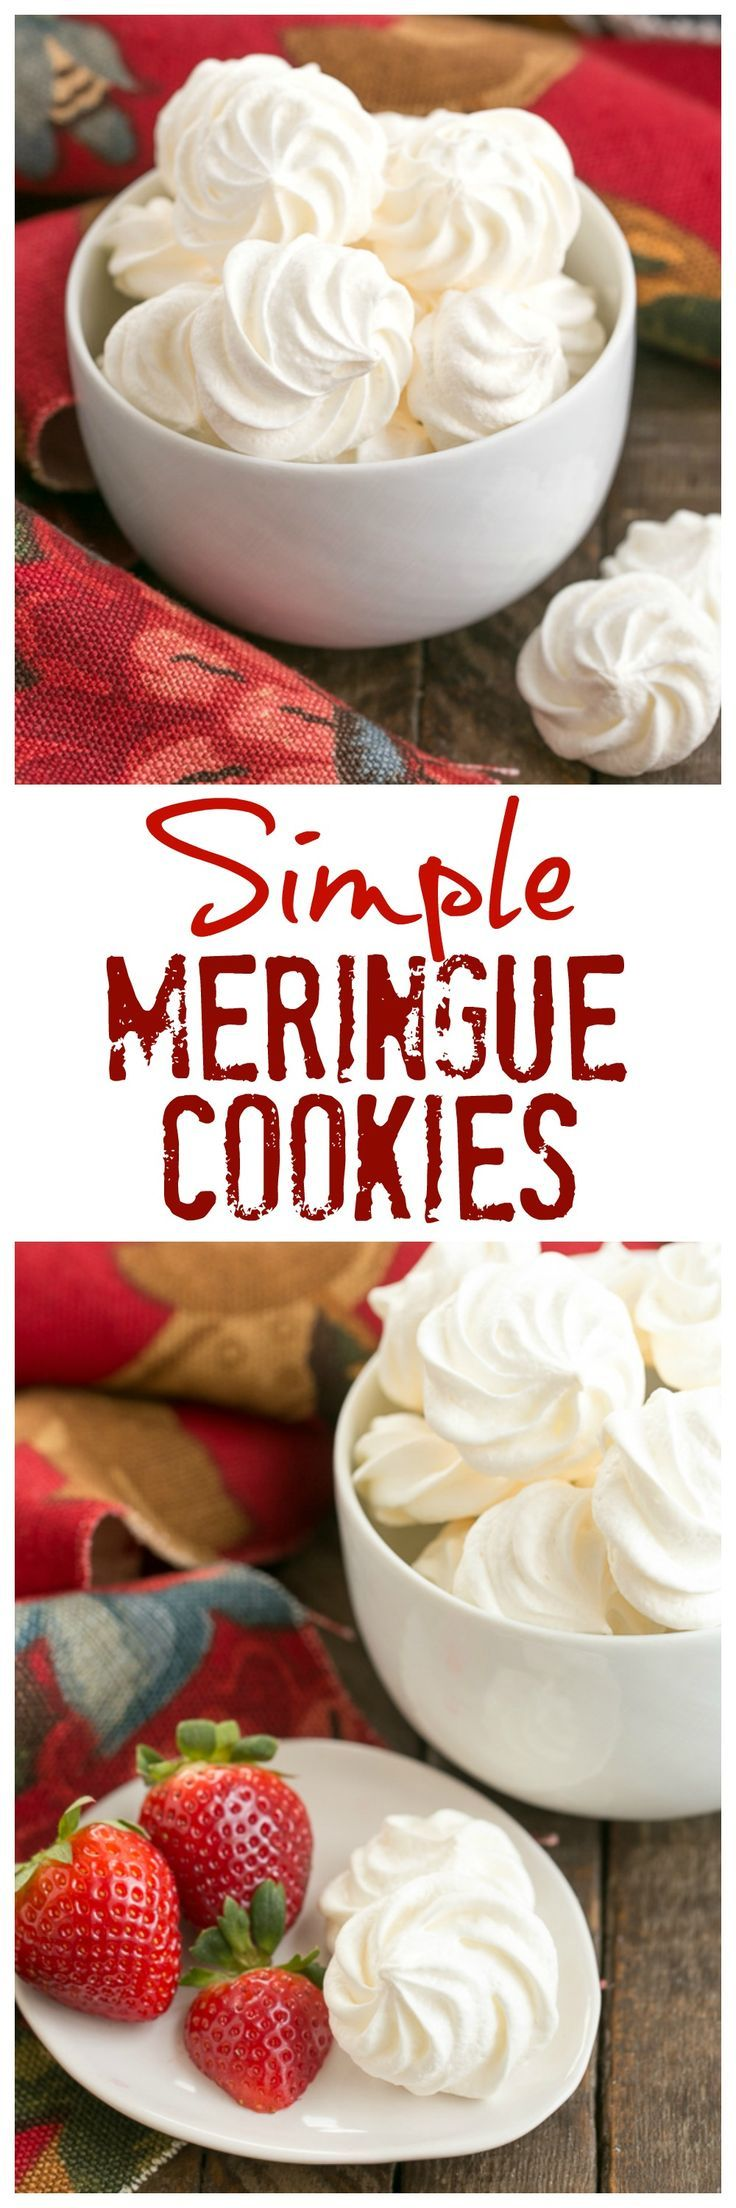 Simple Meringue Cookies | Sweet, ethereal, melt in your mouth cookies /lizzydo/